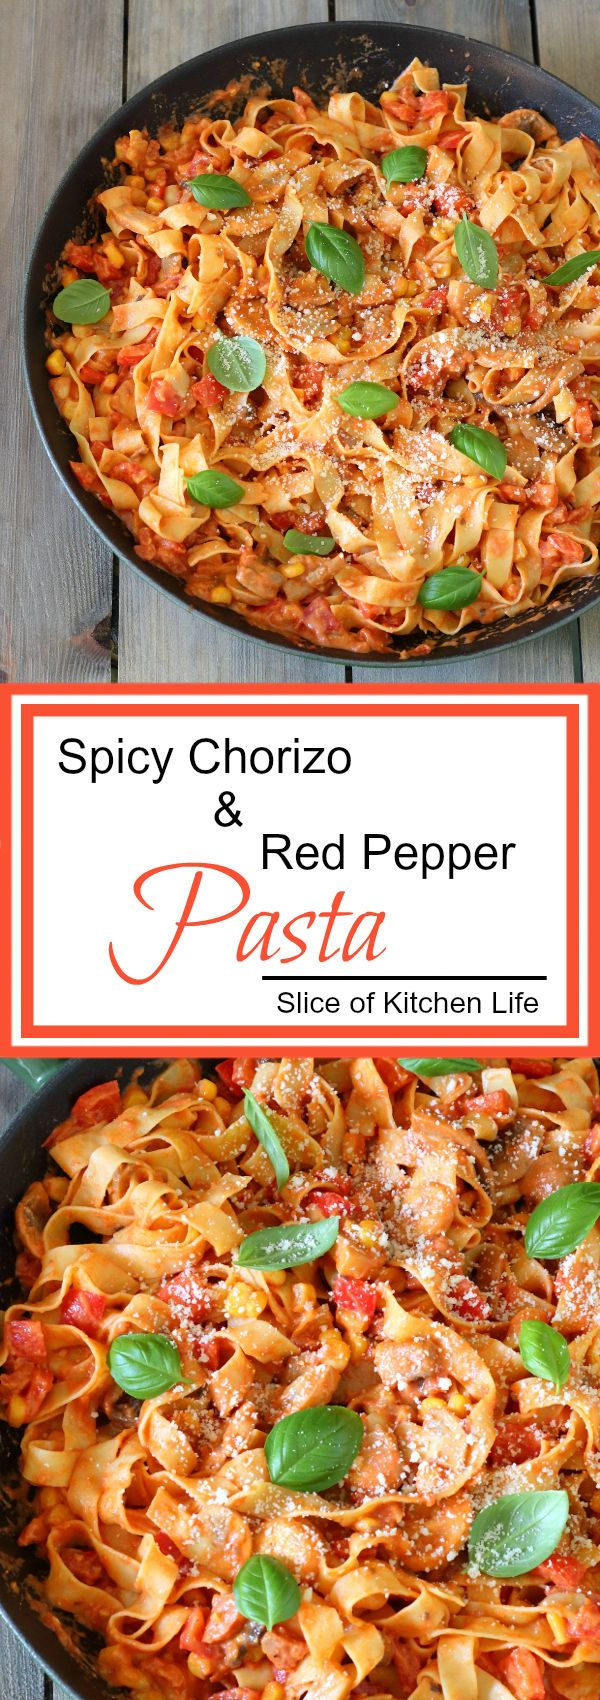 Spicy Chorizo and Red Pepper Pasta Recipe - Creamy, cheesy and packed full of veggies, this pasta dish is warming, comforting and oh so tasty!   sliceofkitchenlife.com